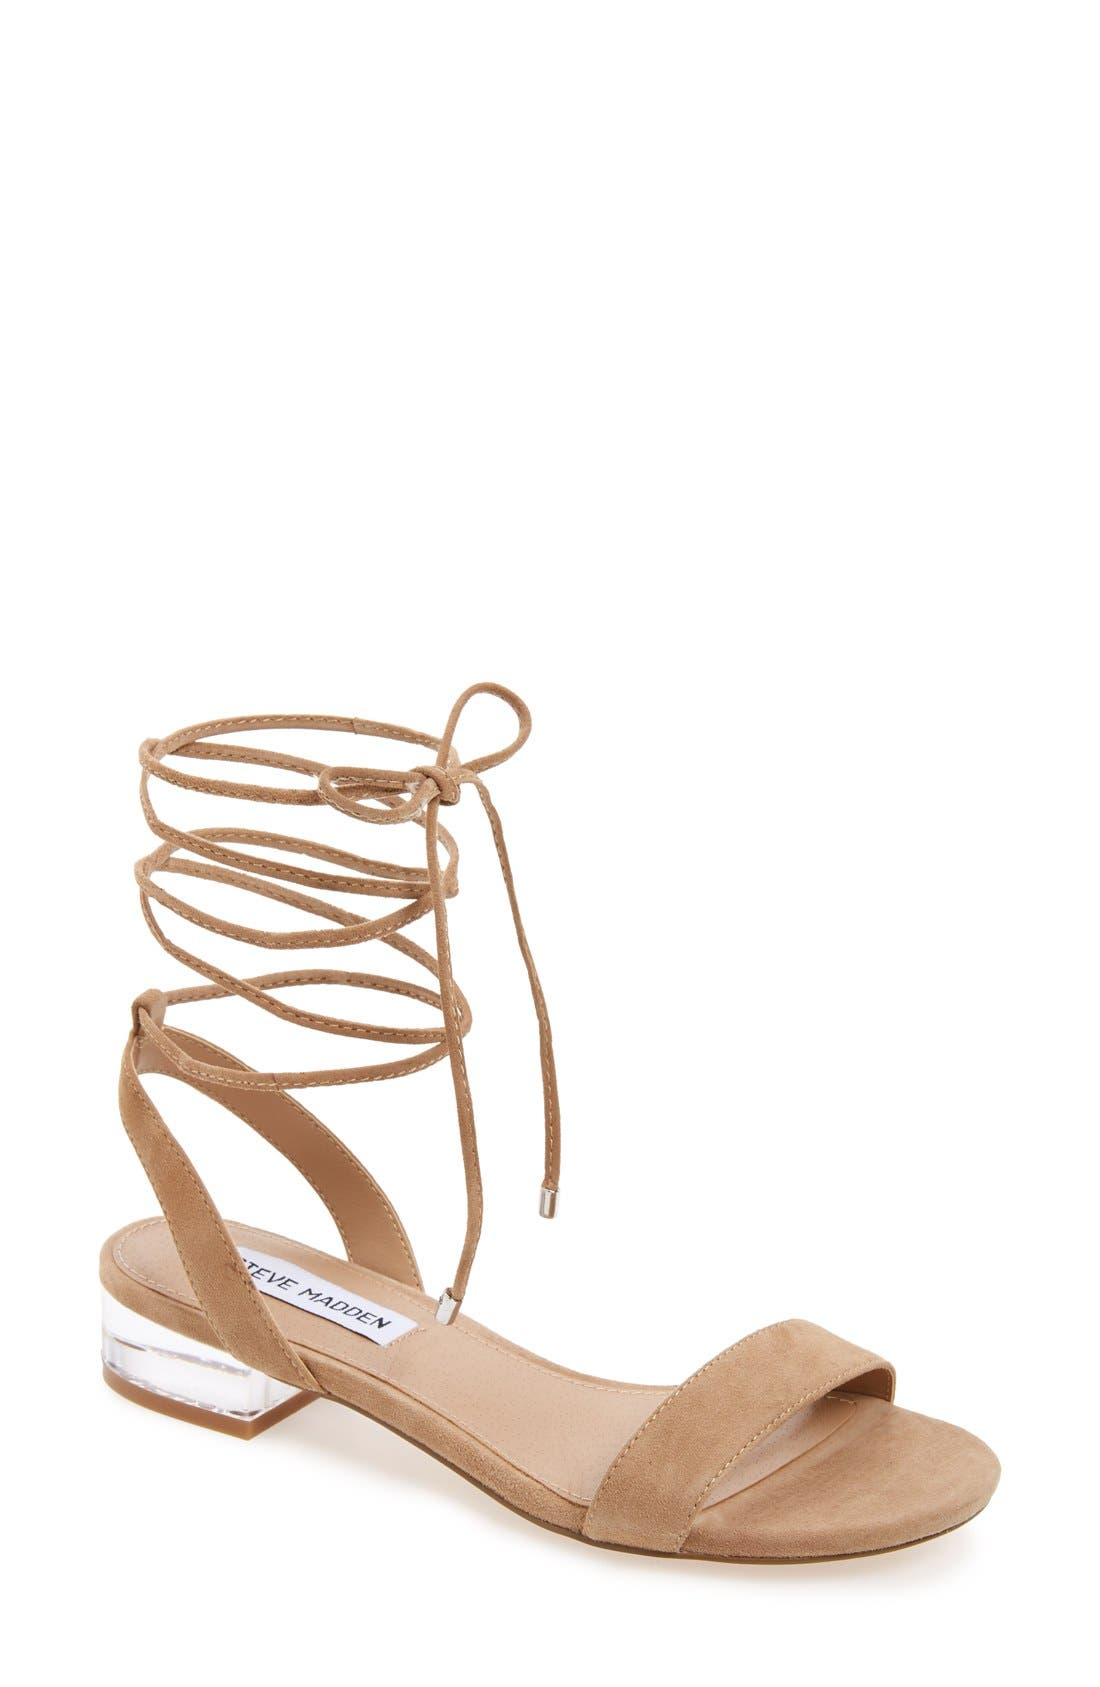 STEVE MADDEN 'Carolyn' Lace-Up Sandal